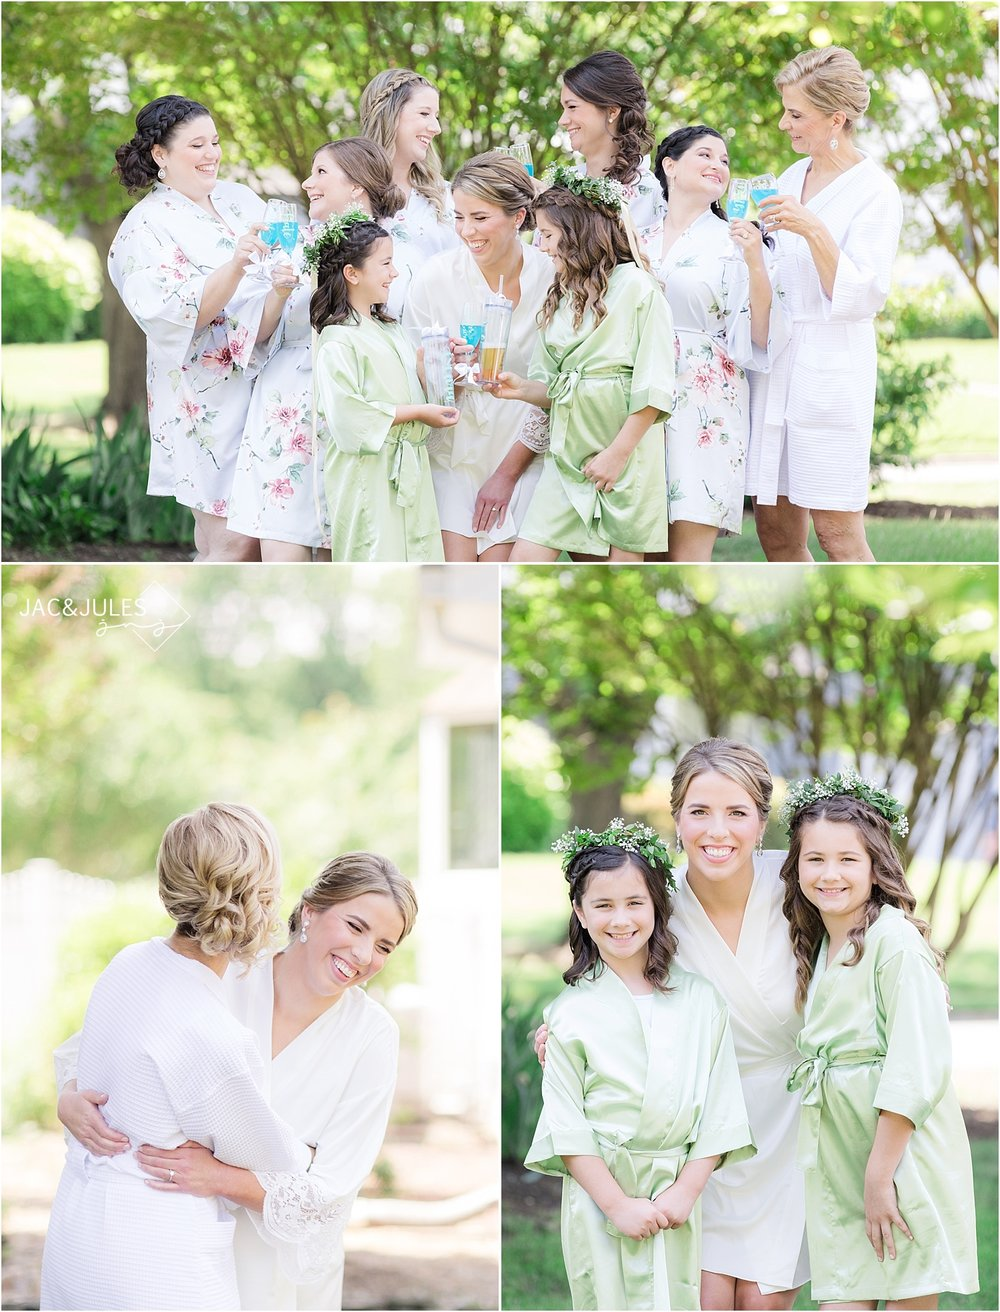 photo of bridesmaids in their robes before the wedding